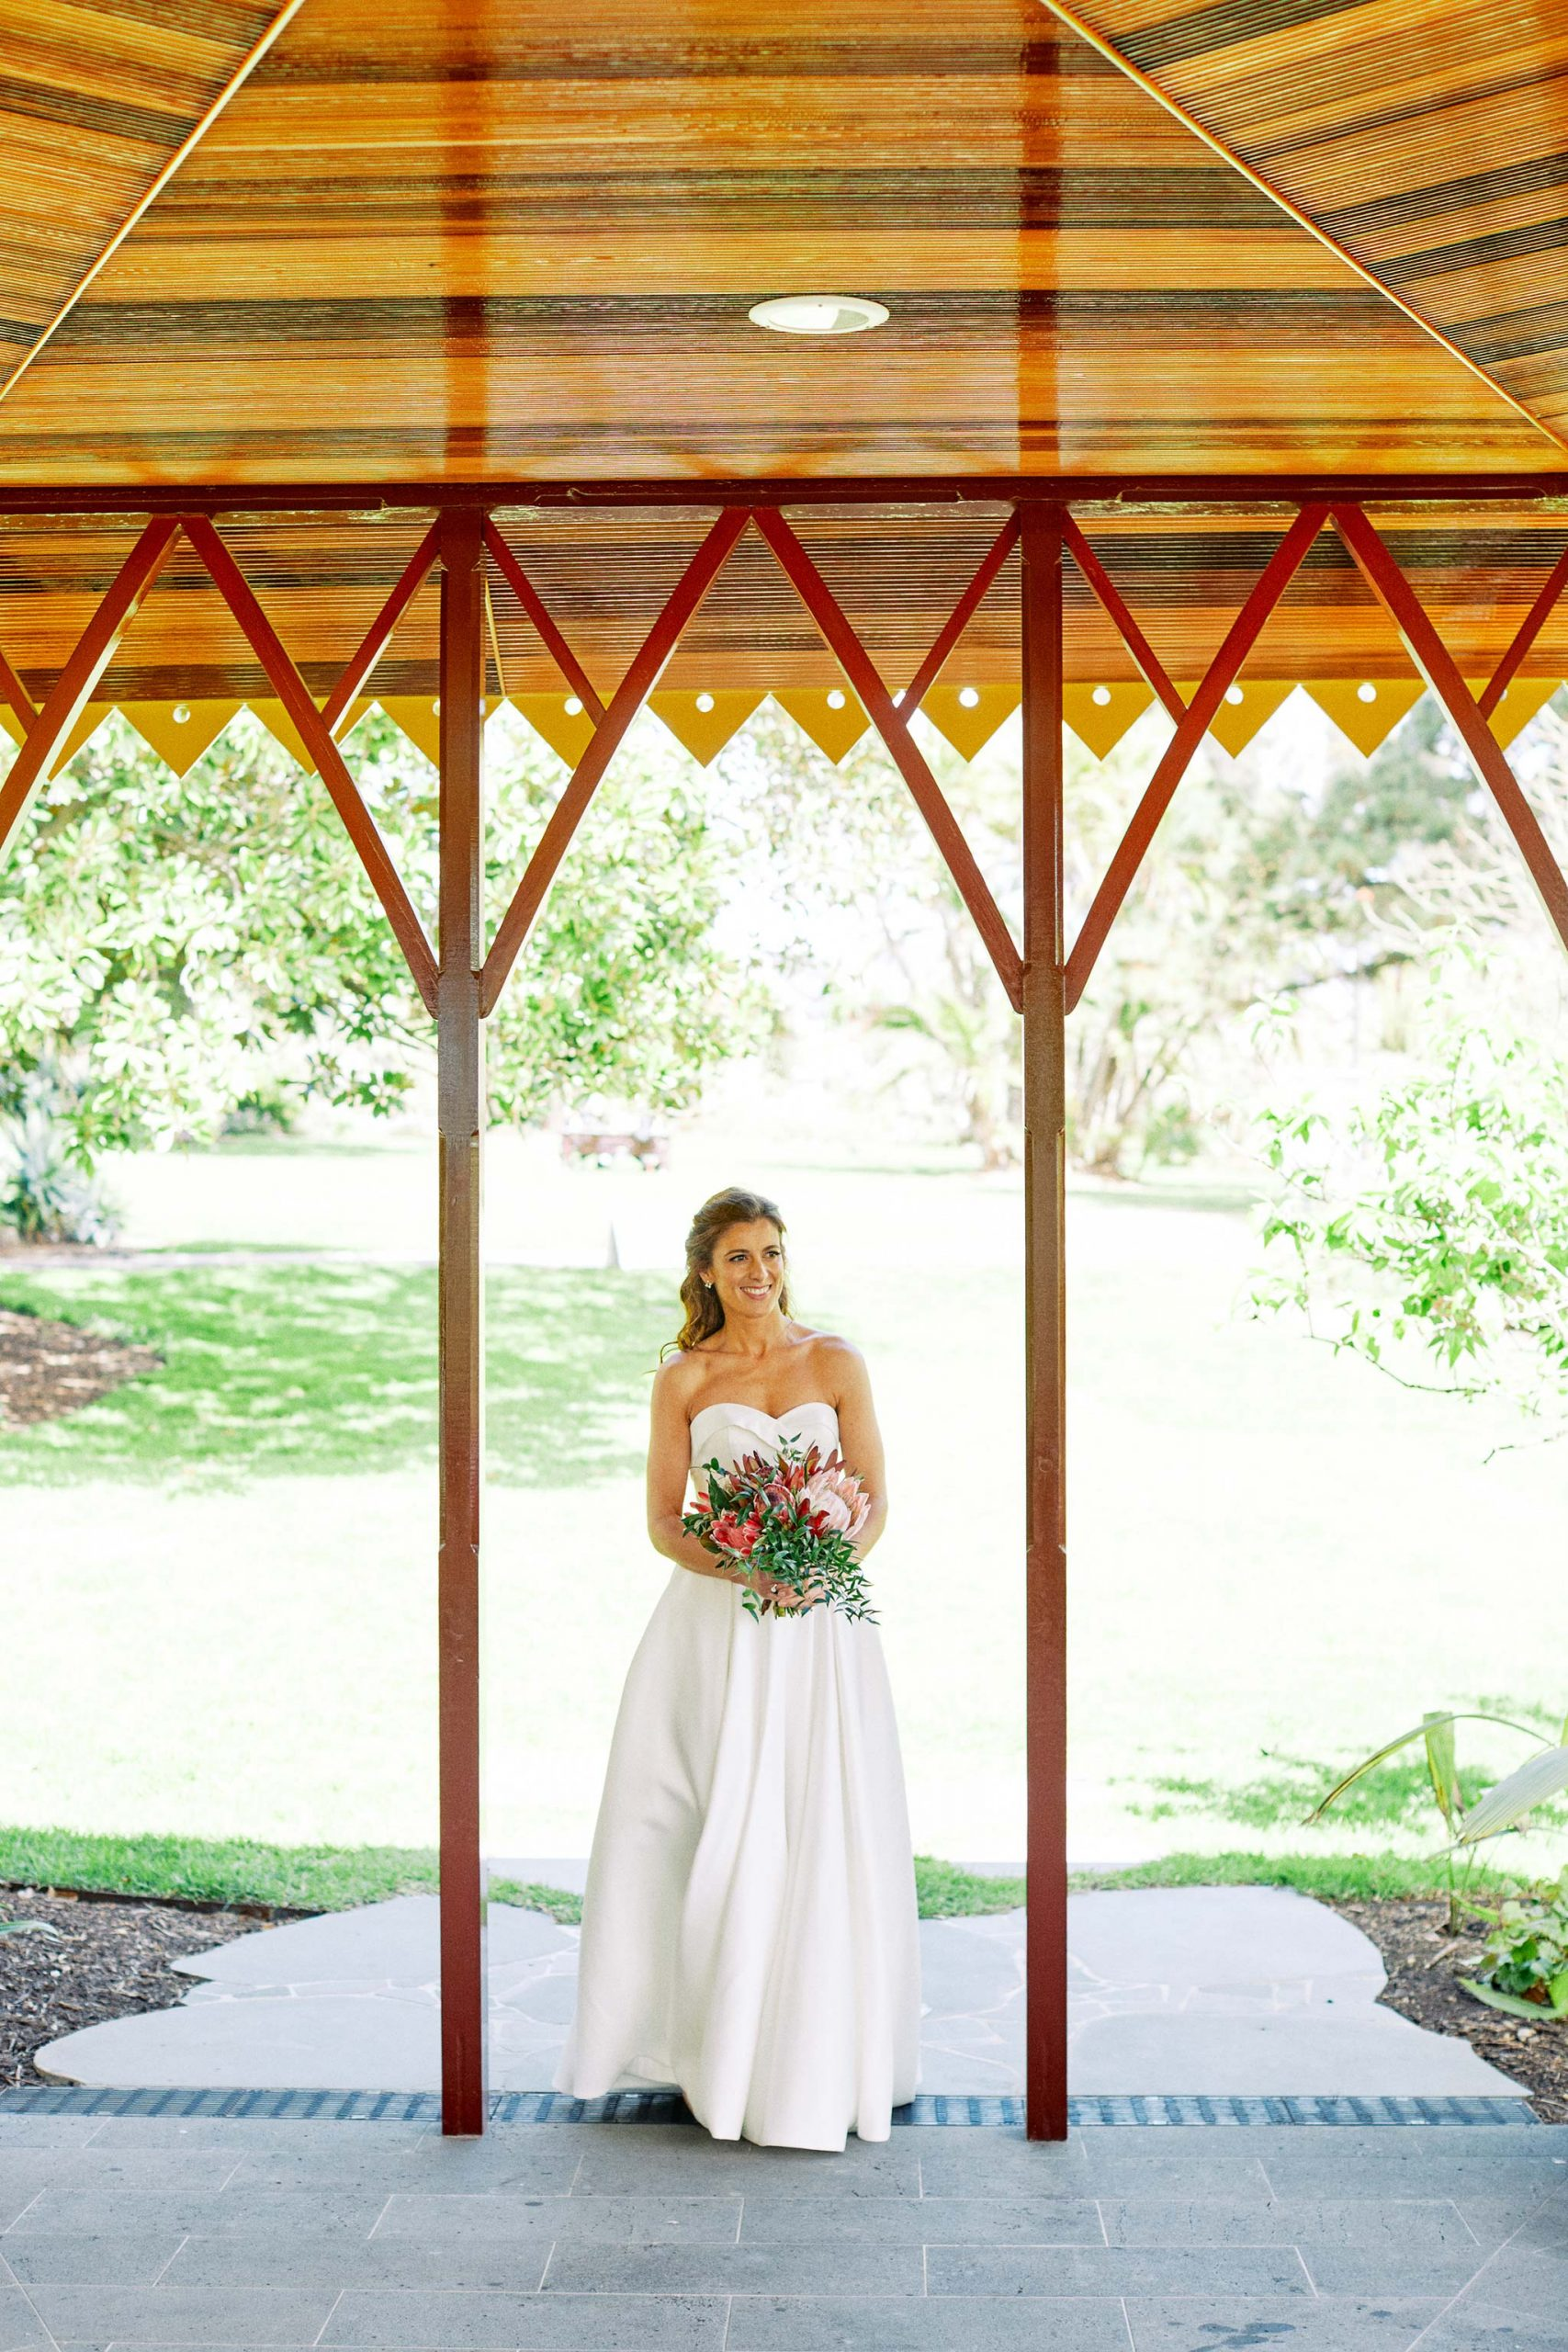 Melbourne Royal Botanical Garden Wedding Ceremony Bride Arrival